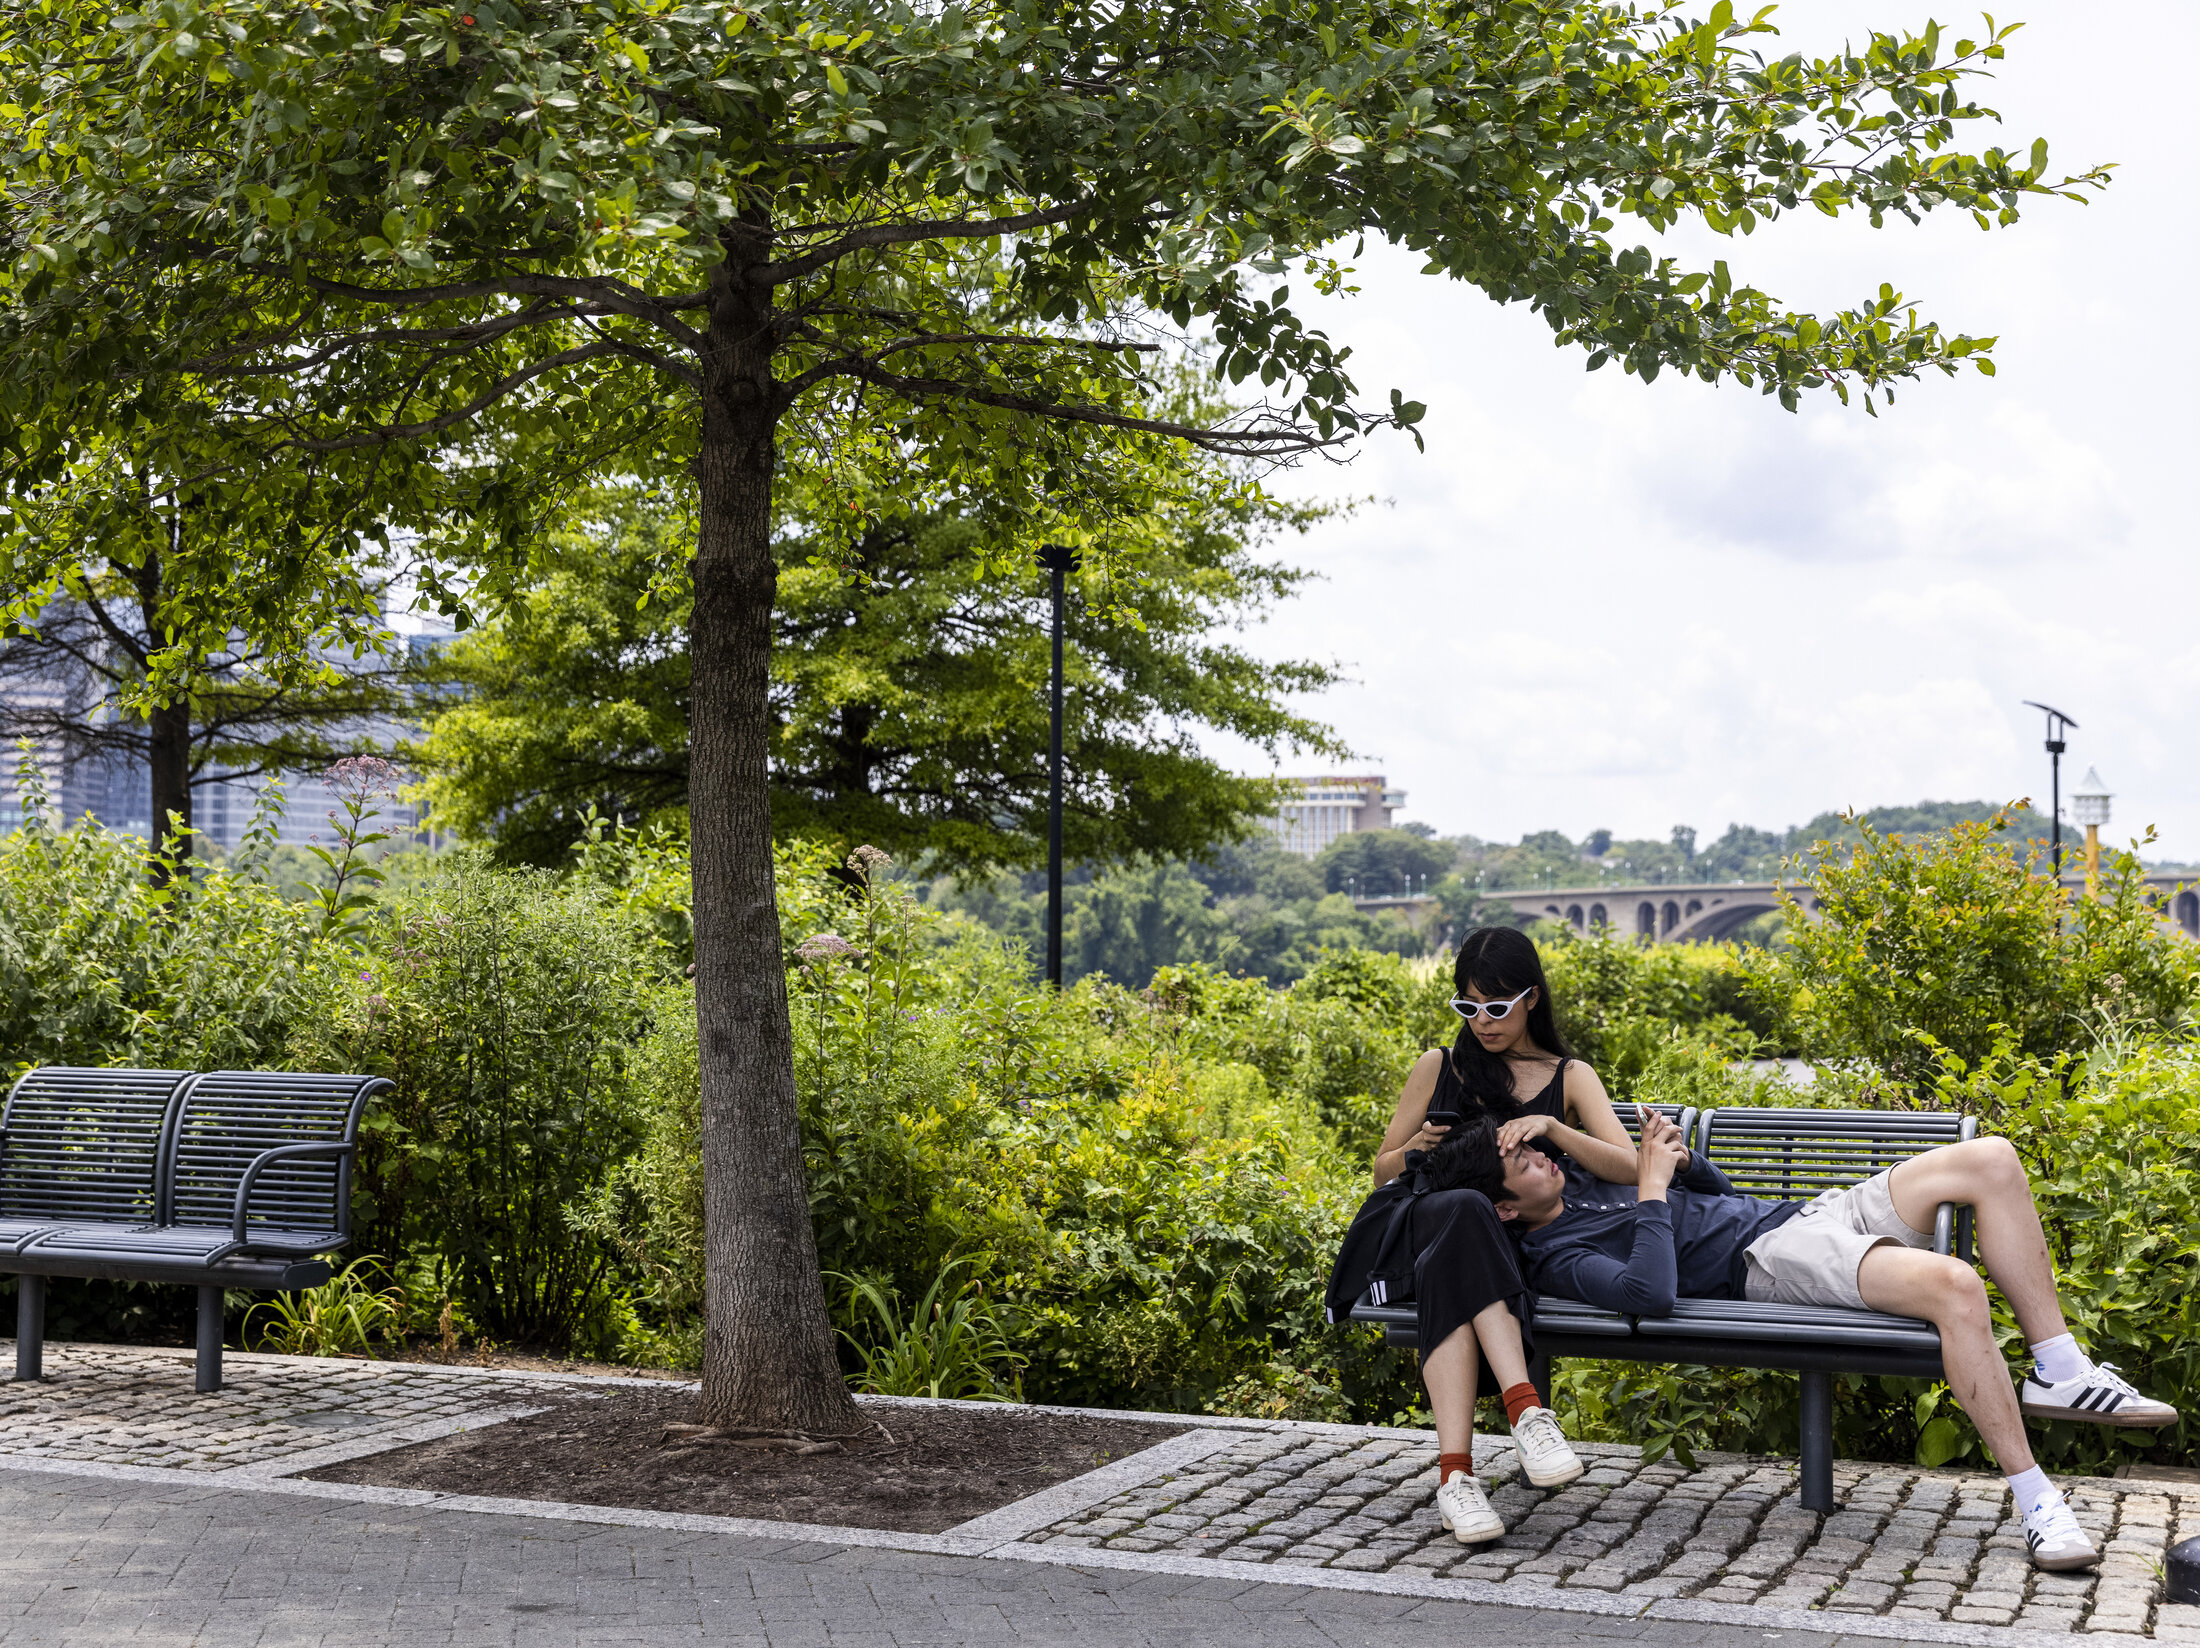 People relax at the Georgetown Waterfront Park in Washington, D.C.